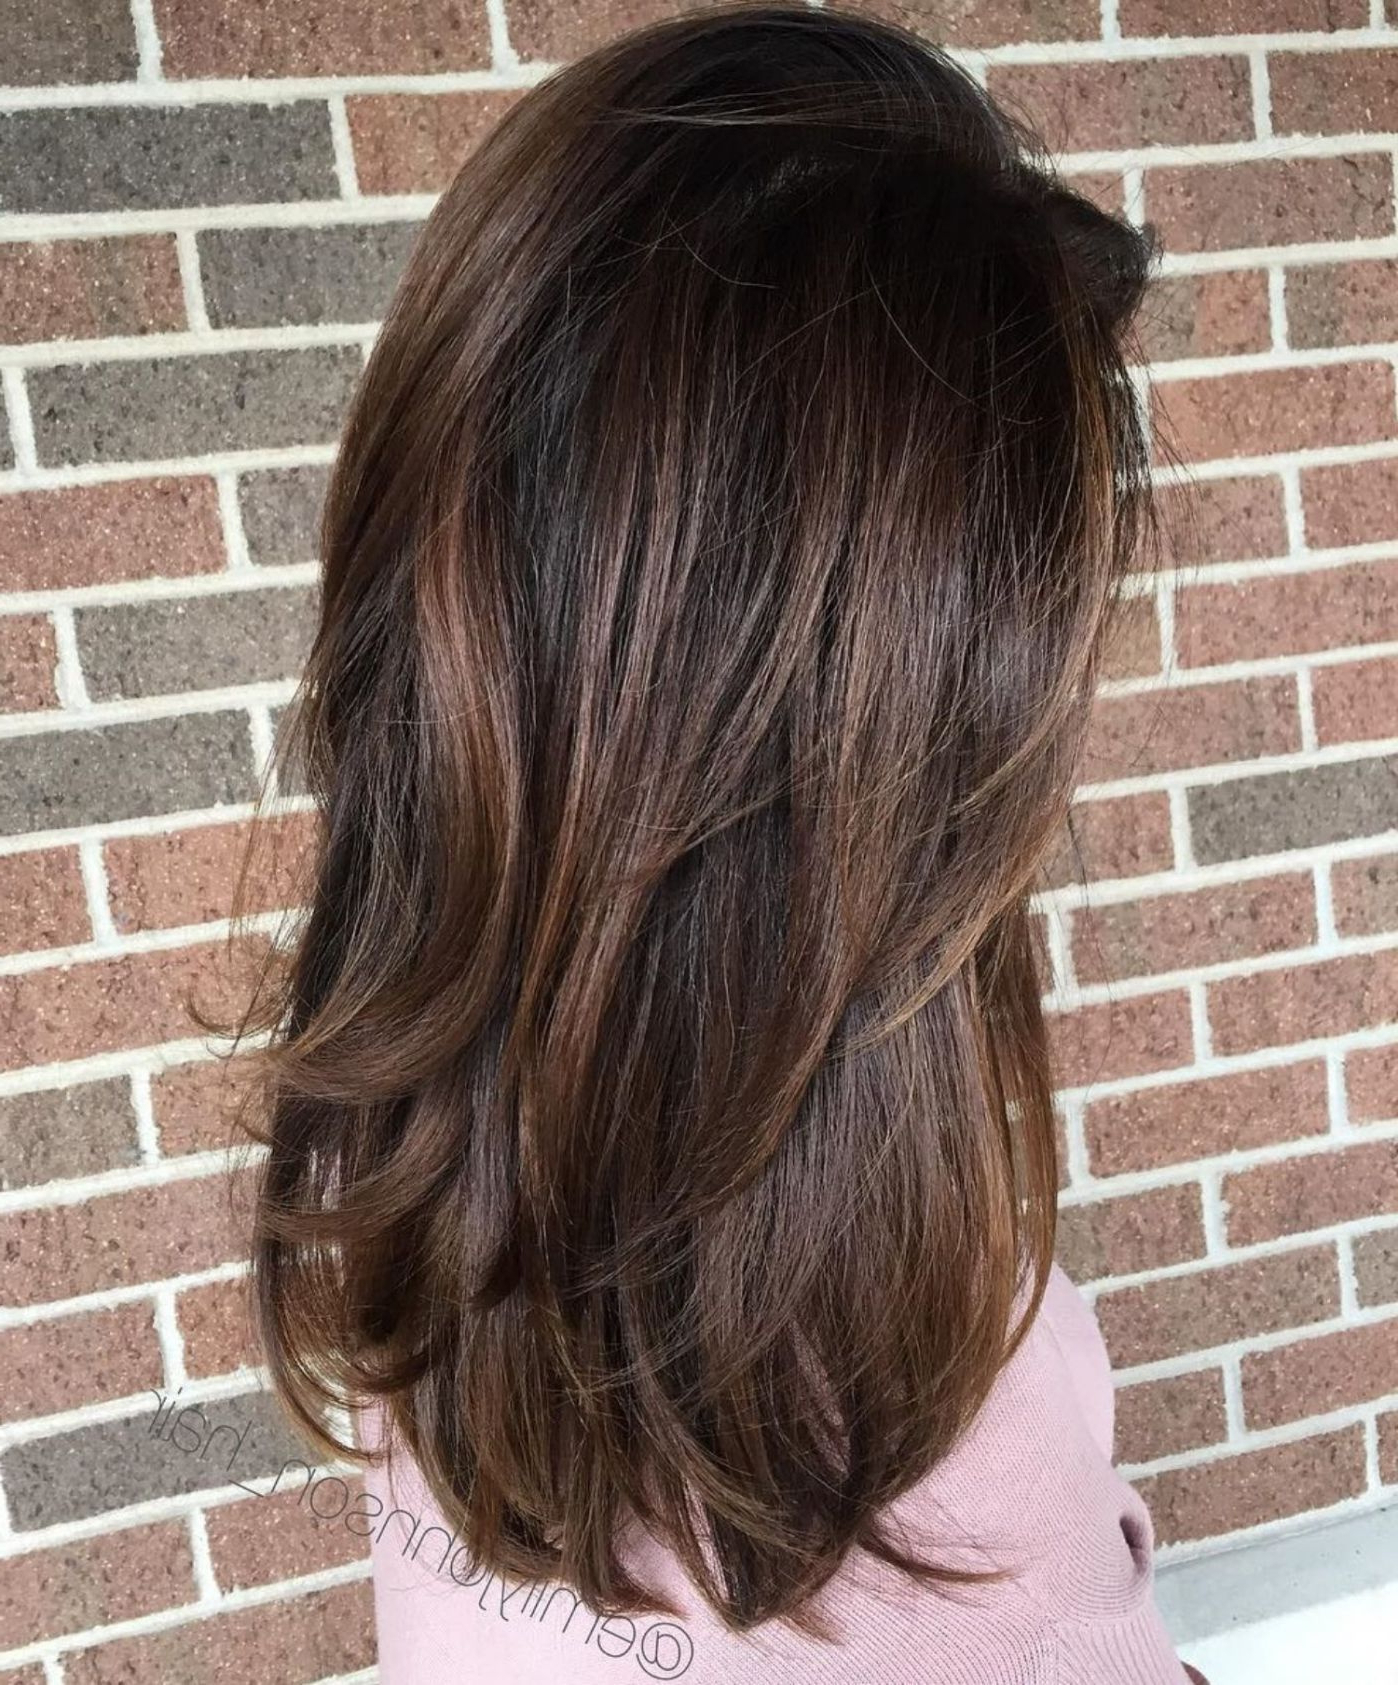 Widely Used Long Layered Light Chocolate Brown Haircuts In Hairstyles : Dark Brown Hair Medium Length Outstanding 70 Brightest (View 12 of 20)